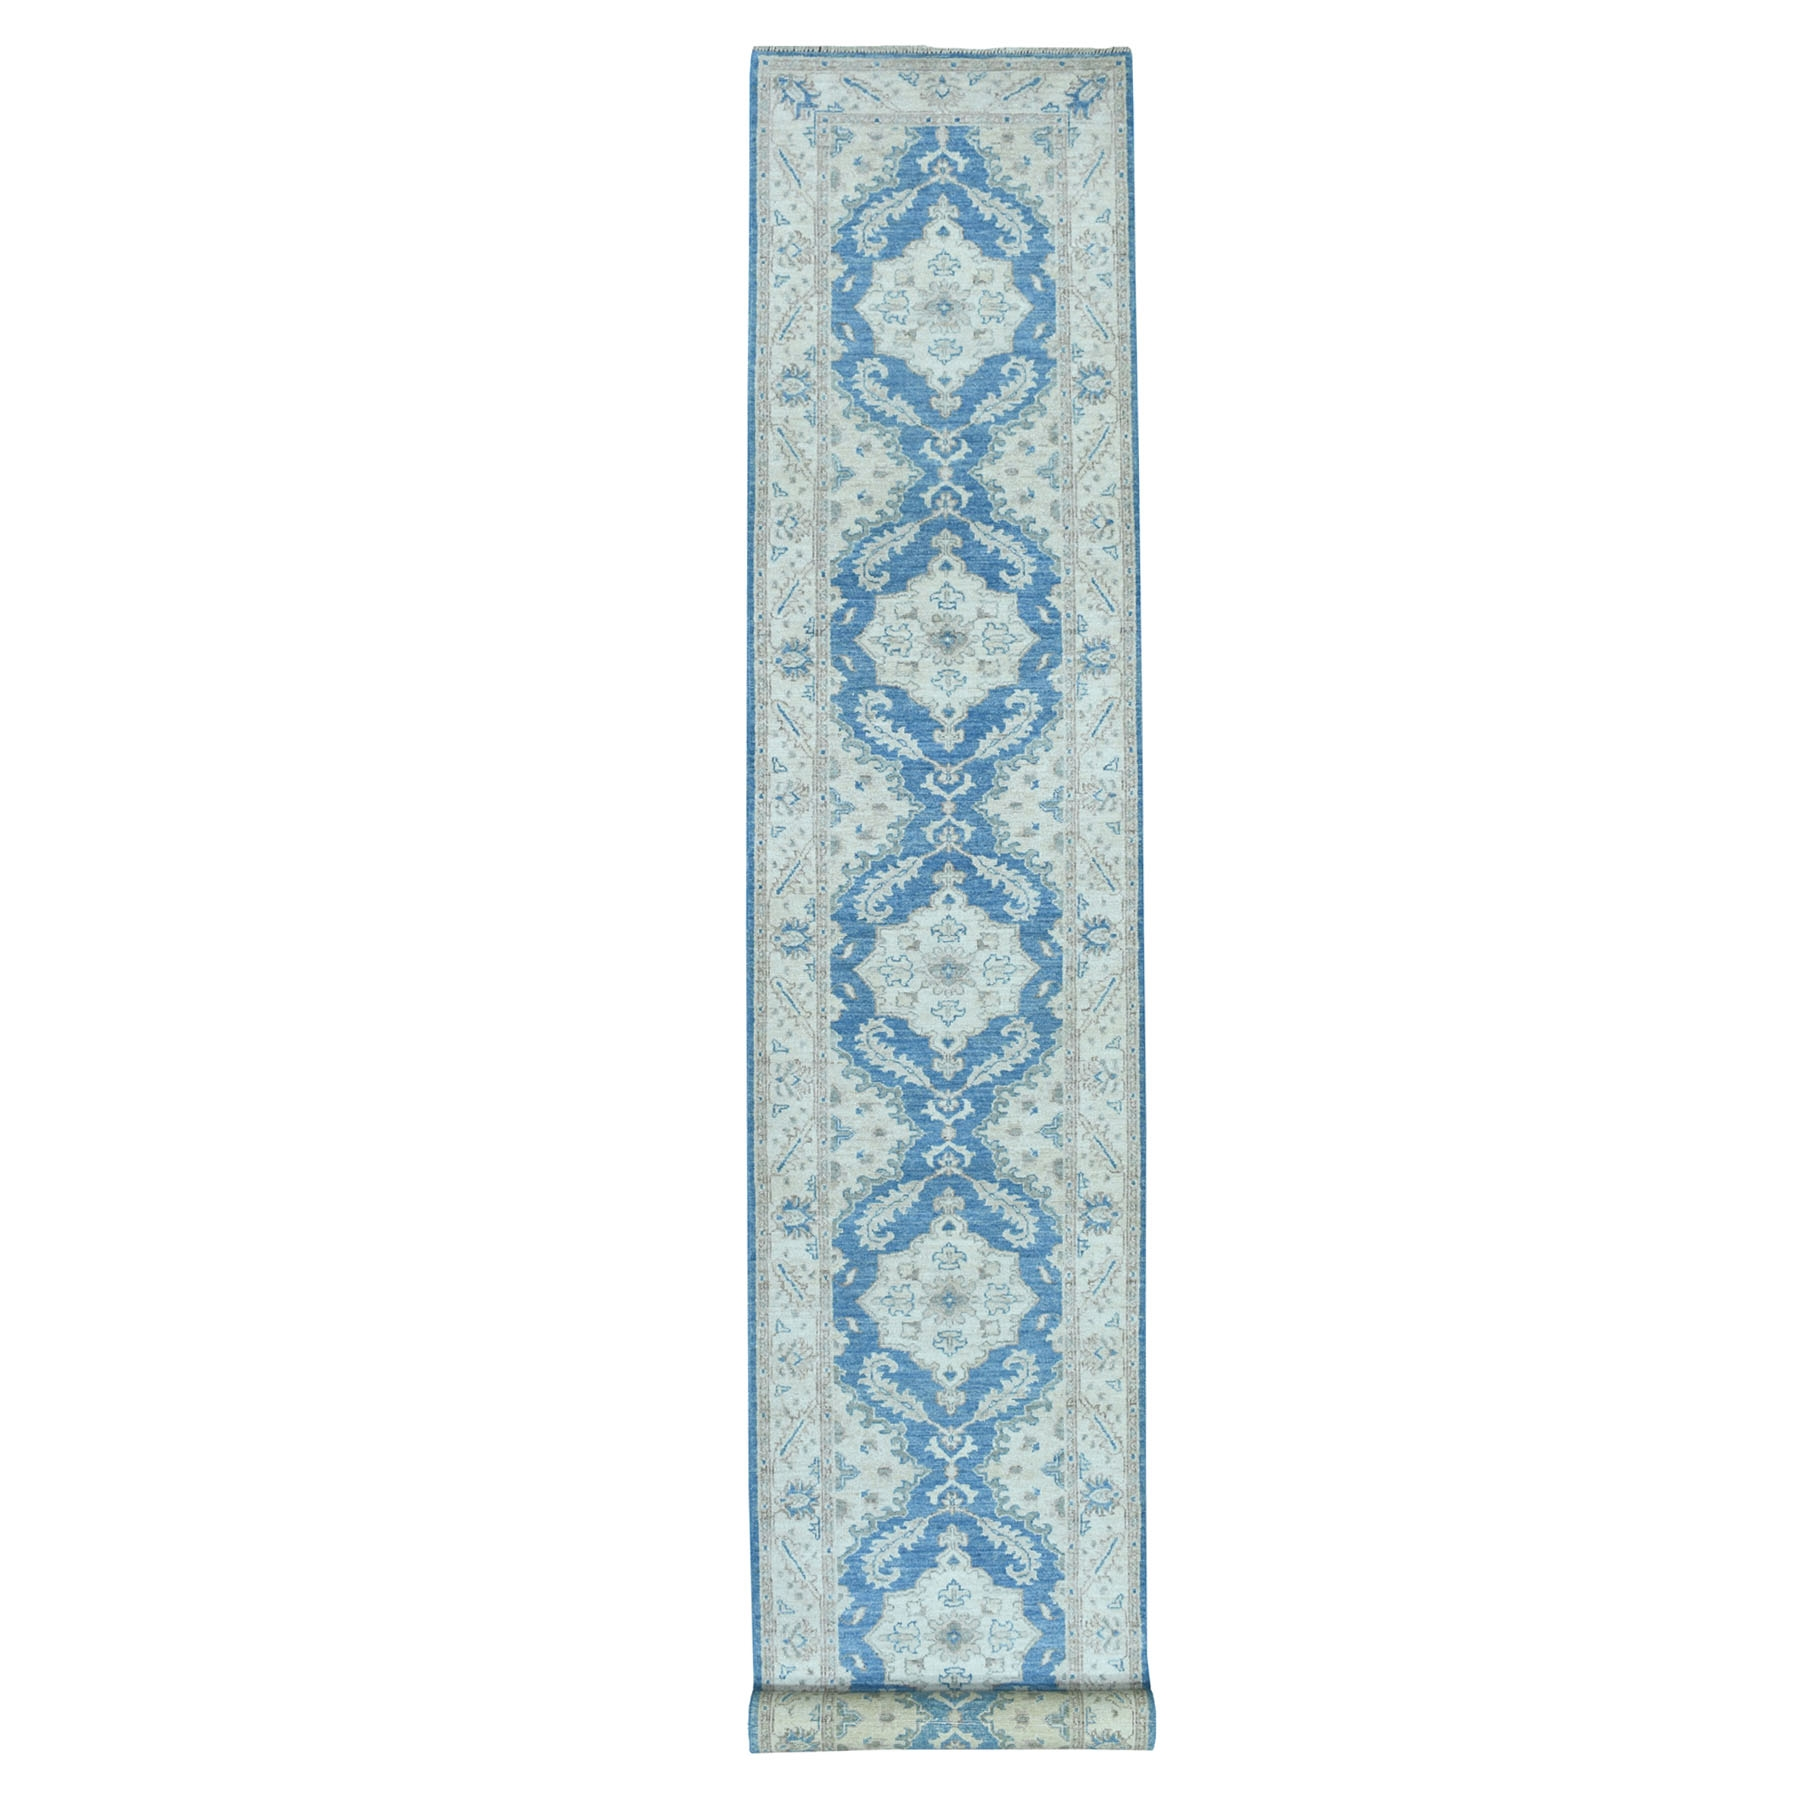 Agra And Turkish Collection Hand Knotted Blue Rug No: 01103058